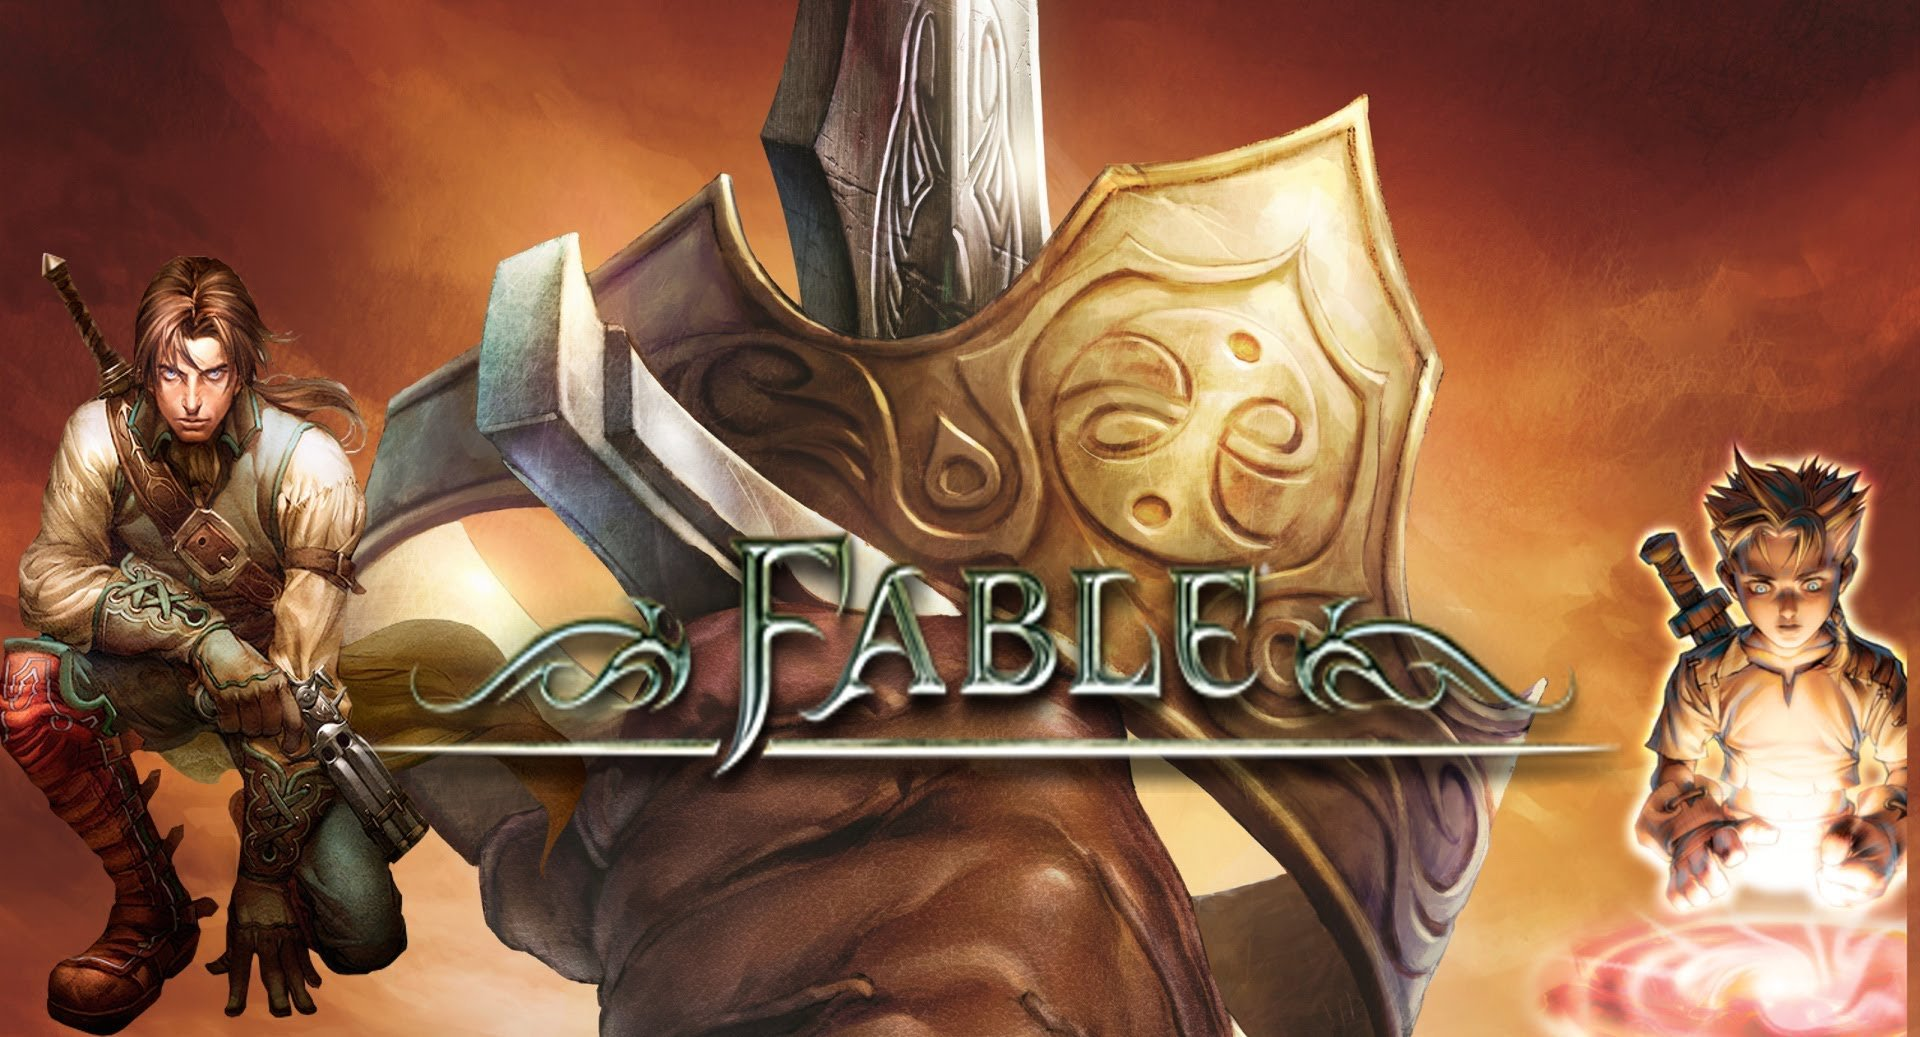 Fable Series : Games lIke Skyrim